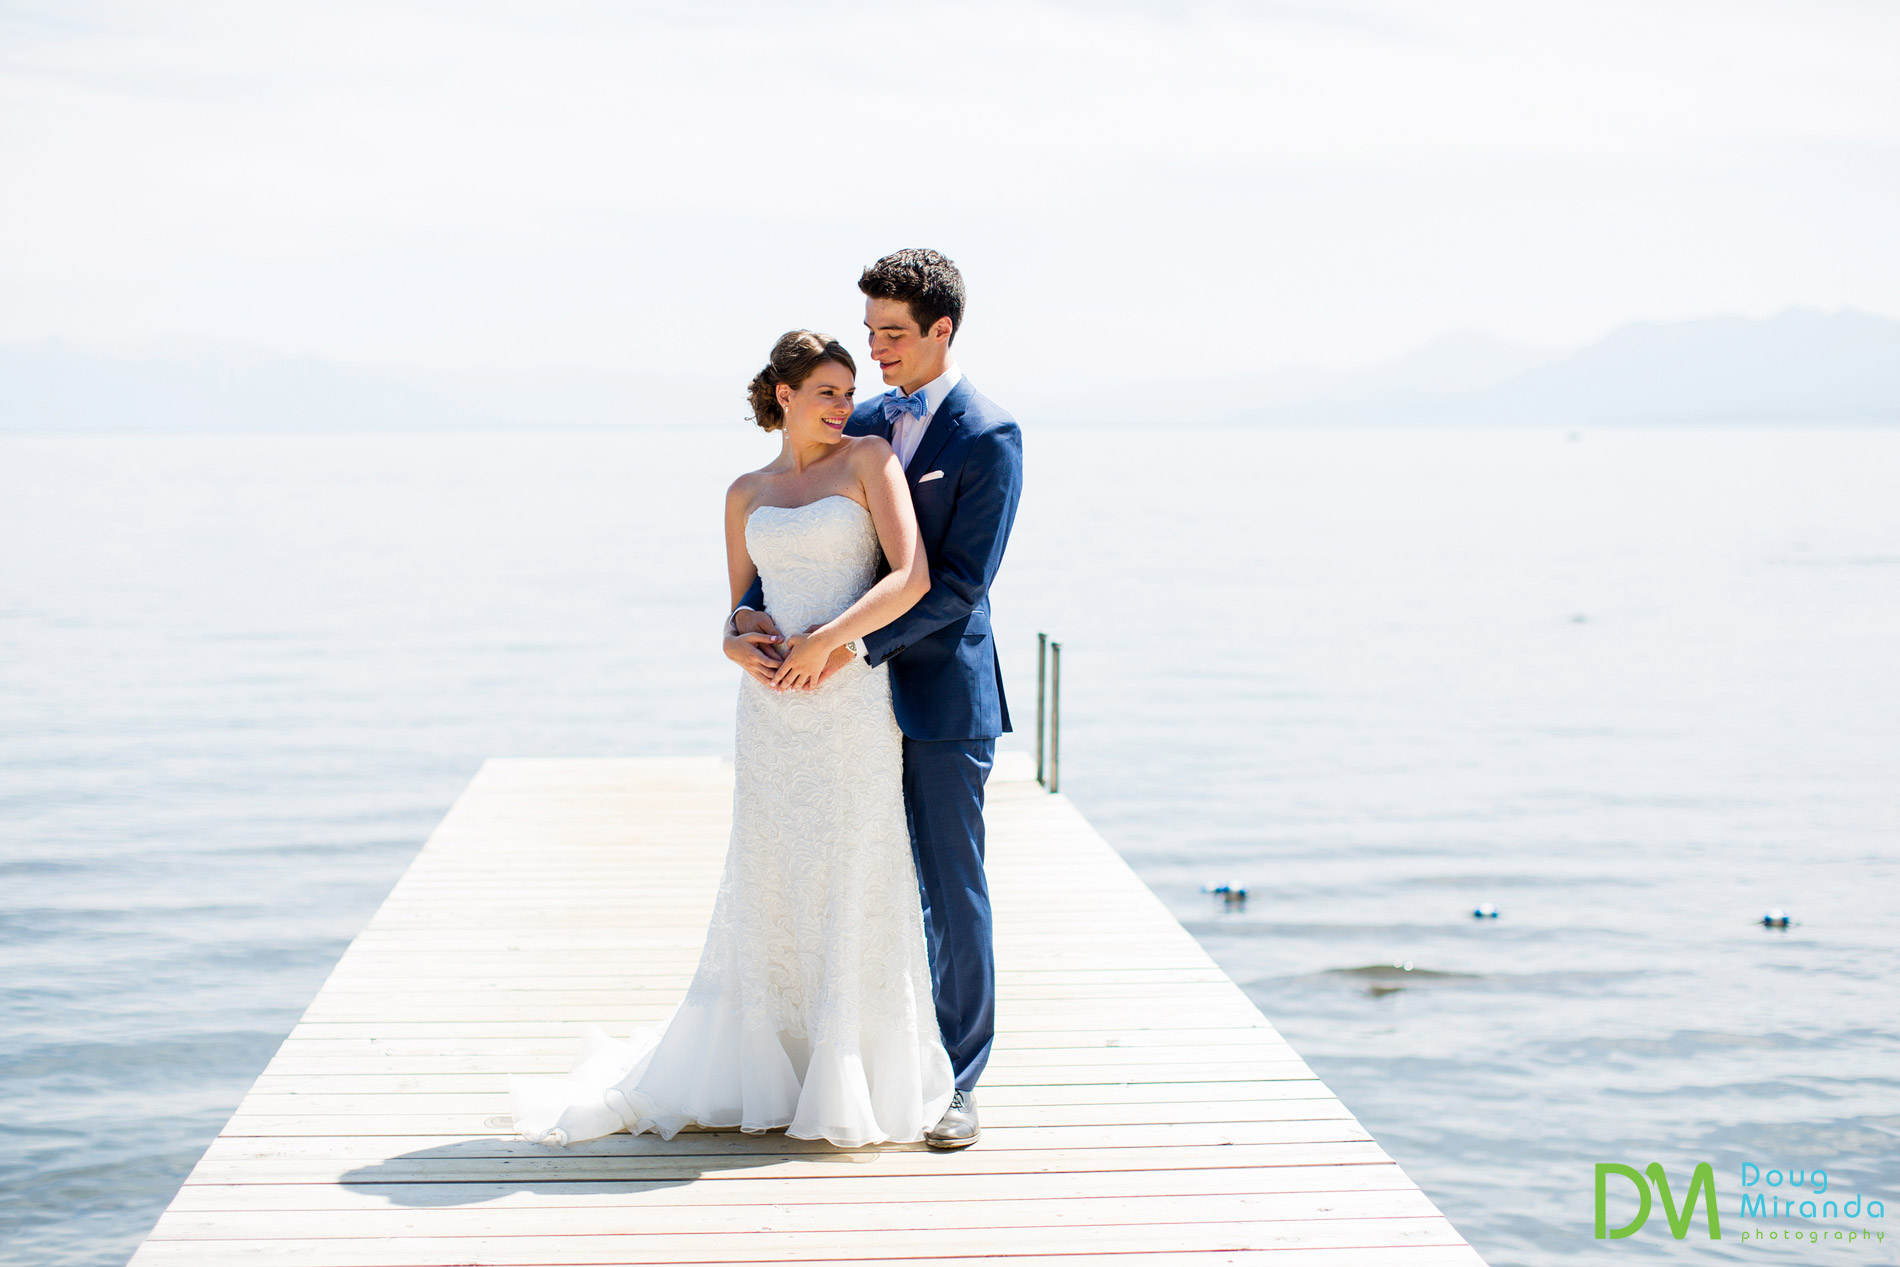 skylandia beach wedding photos